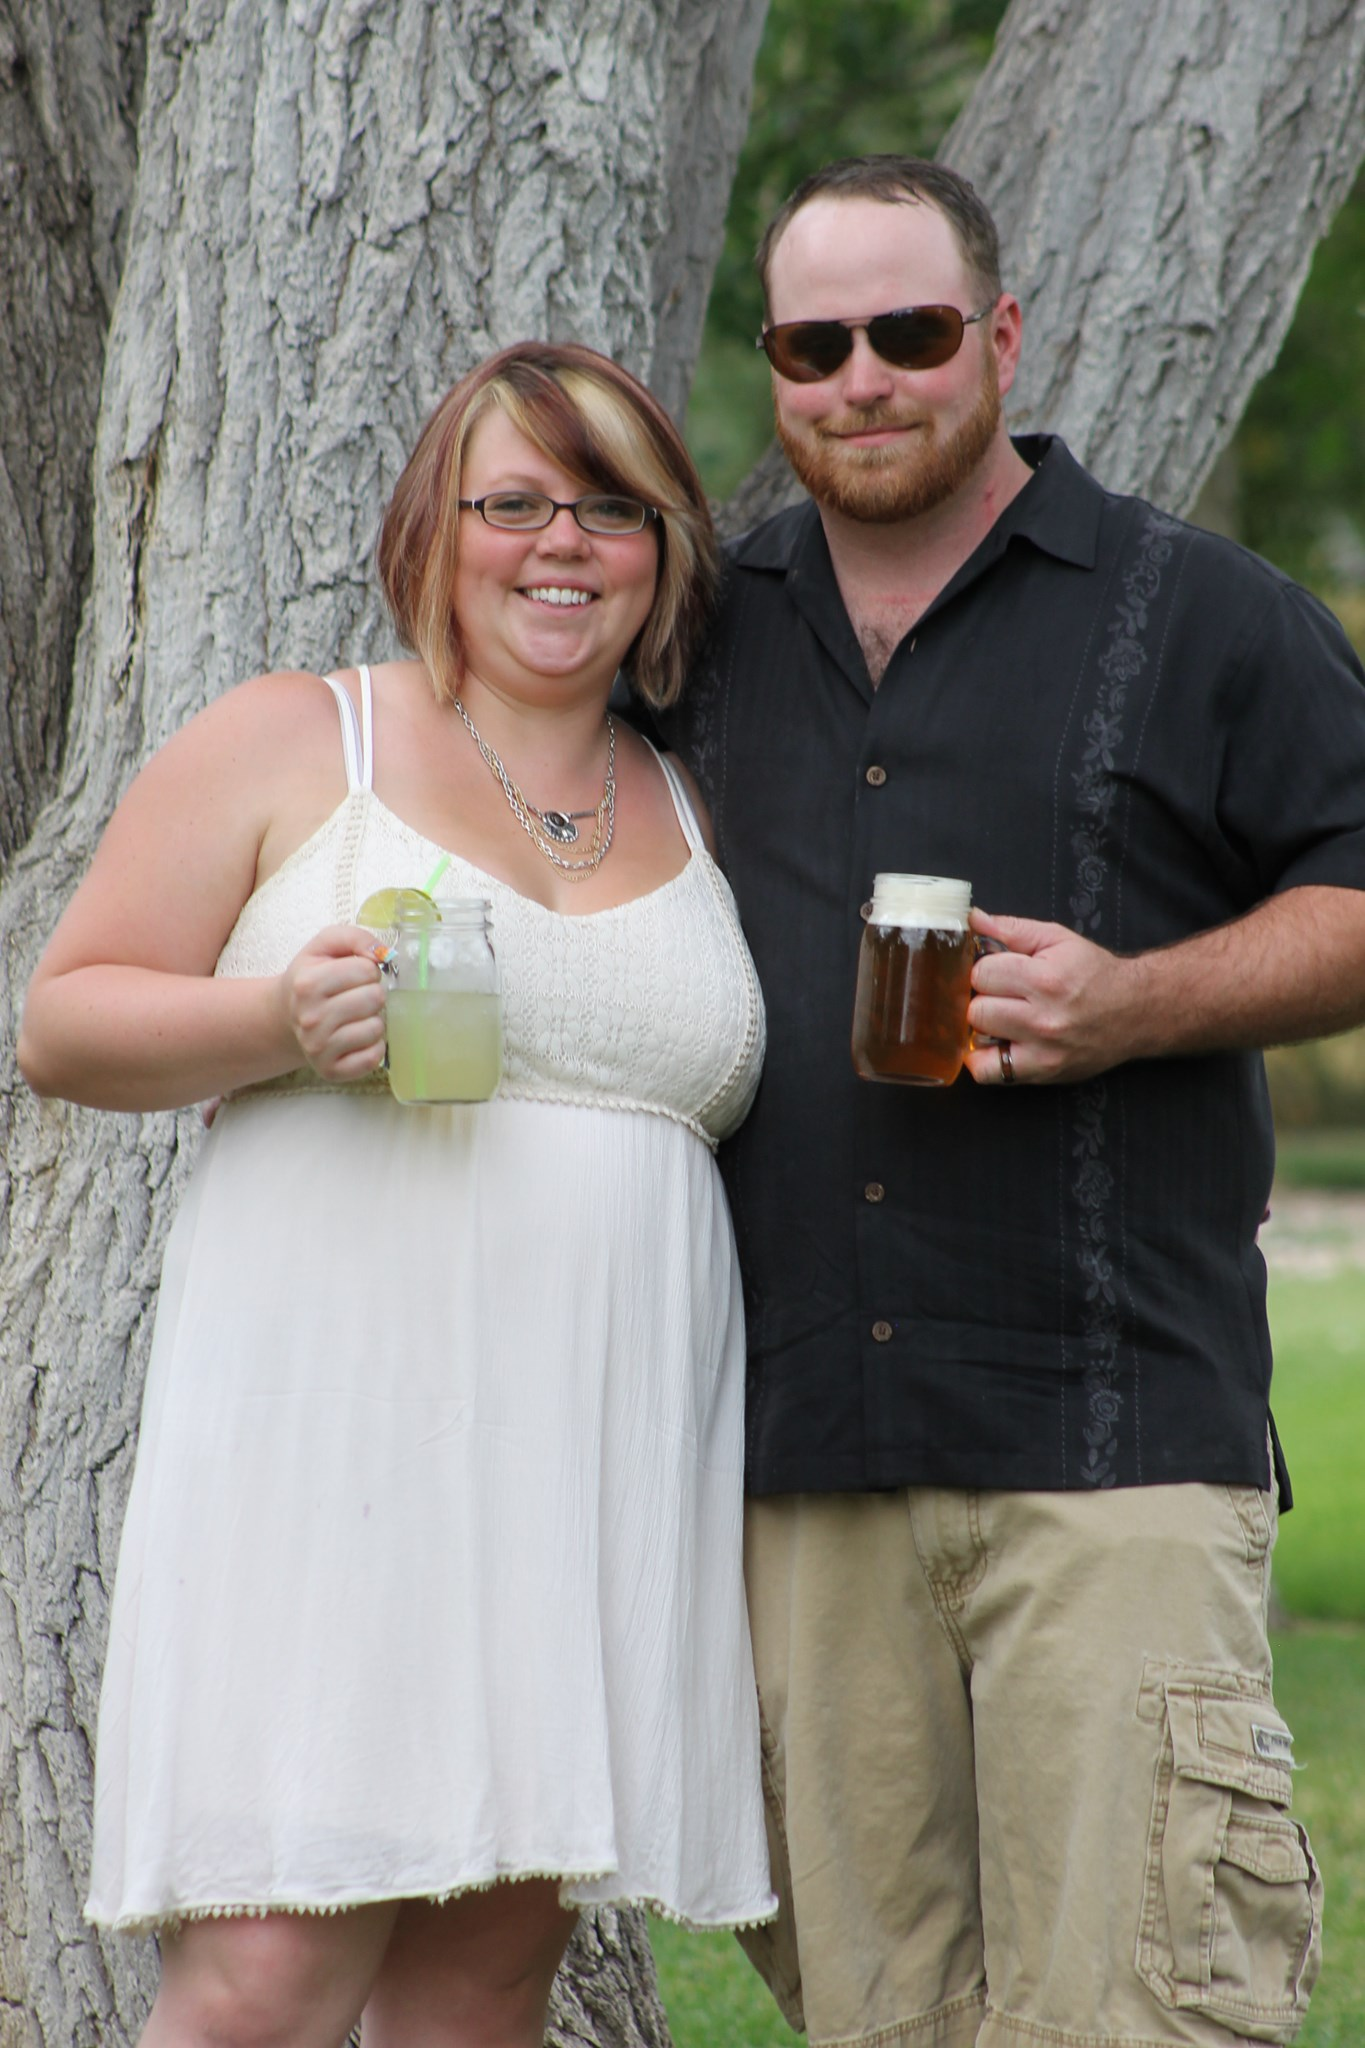 Brittany Huettl met her husband when they were neighbors in their apartment building. They have been together for 14 years and married for five of those years.